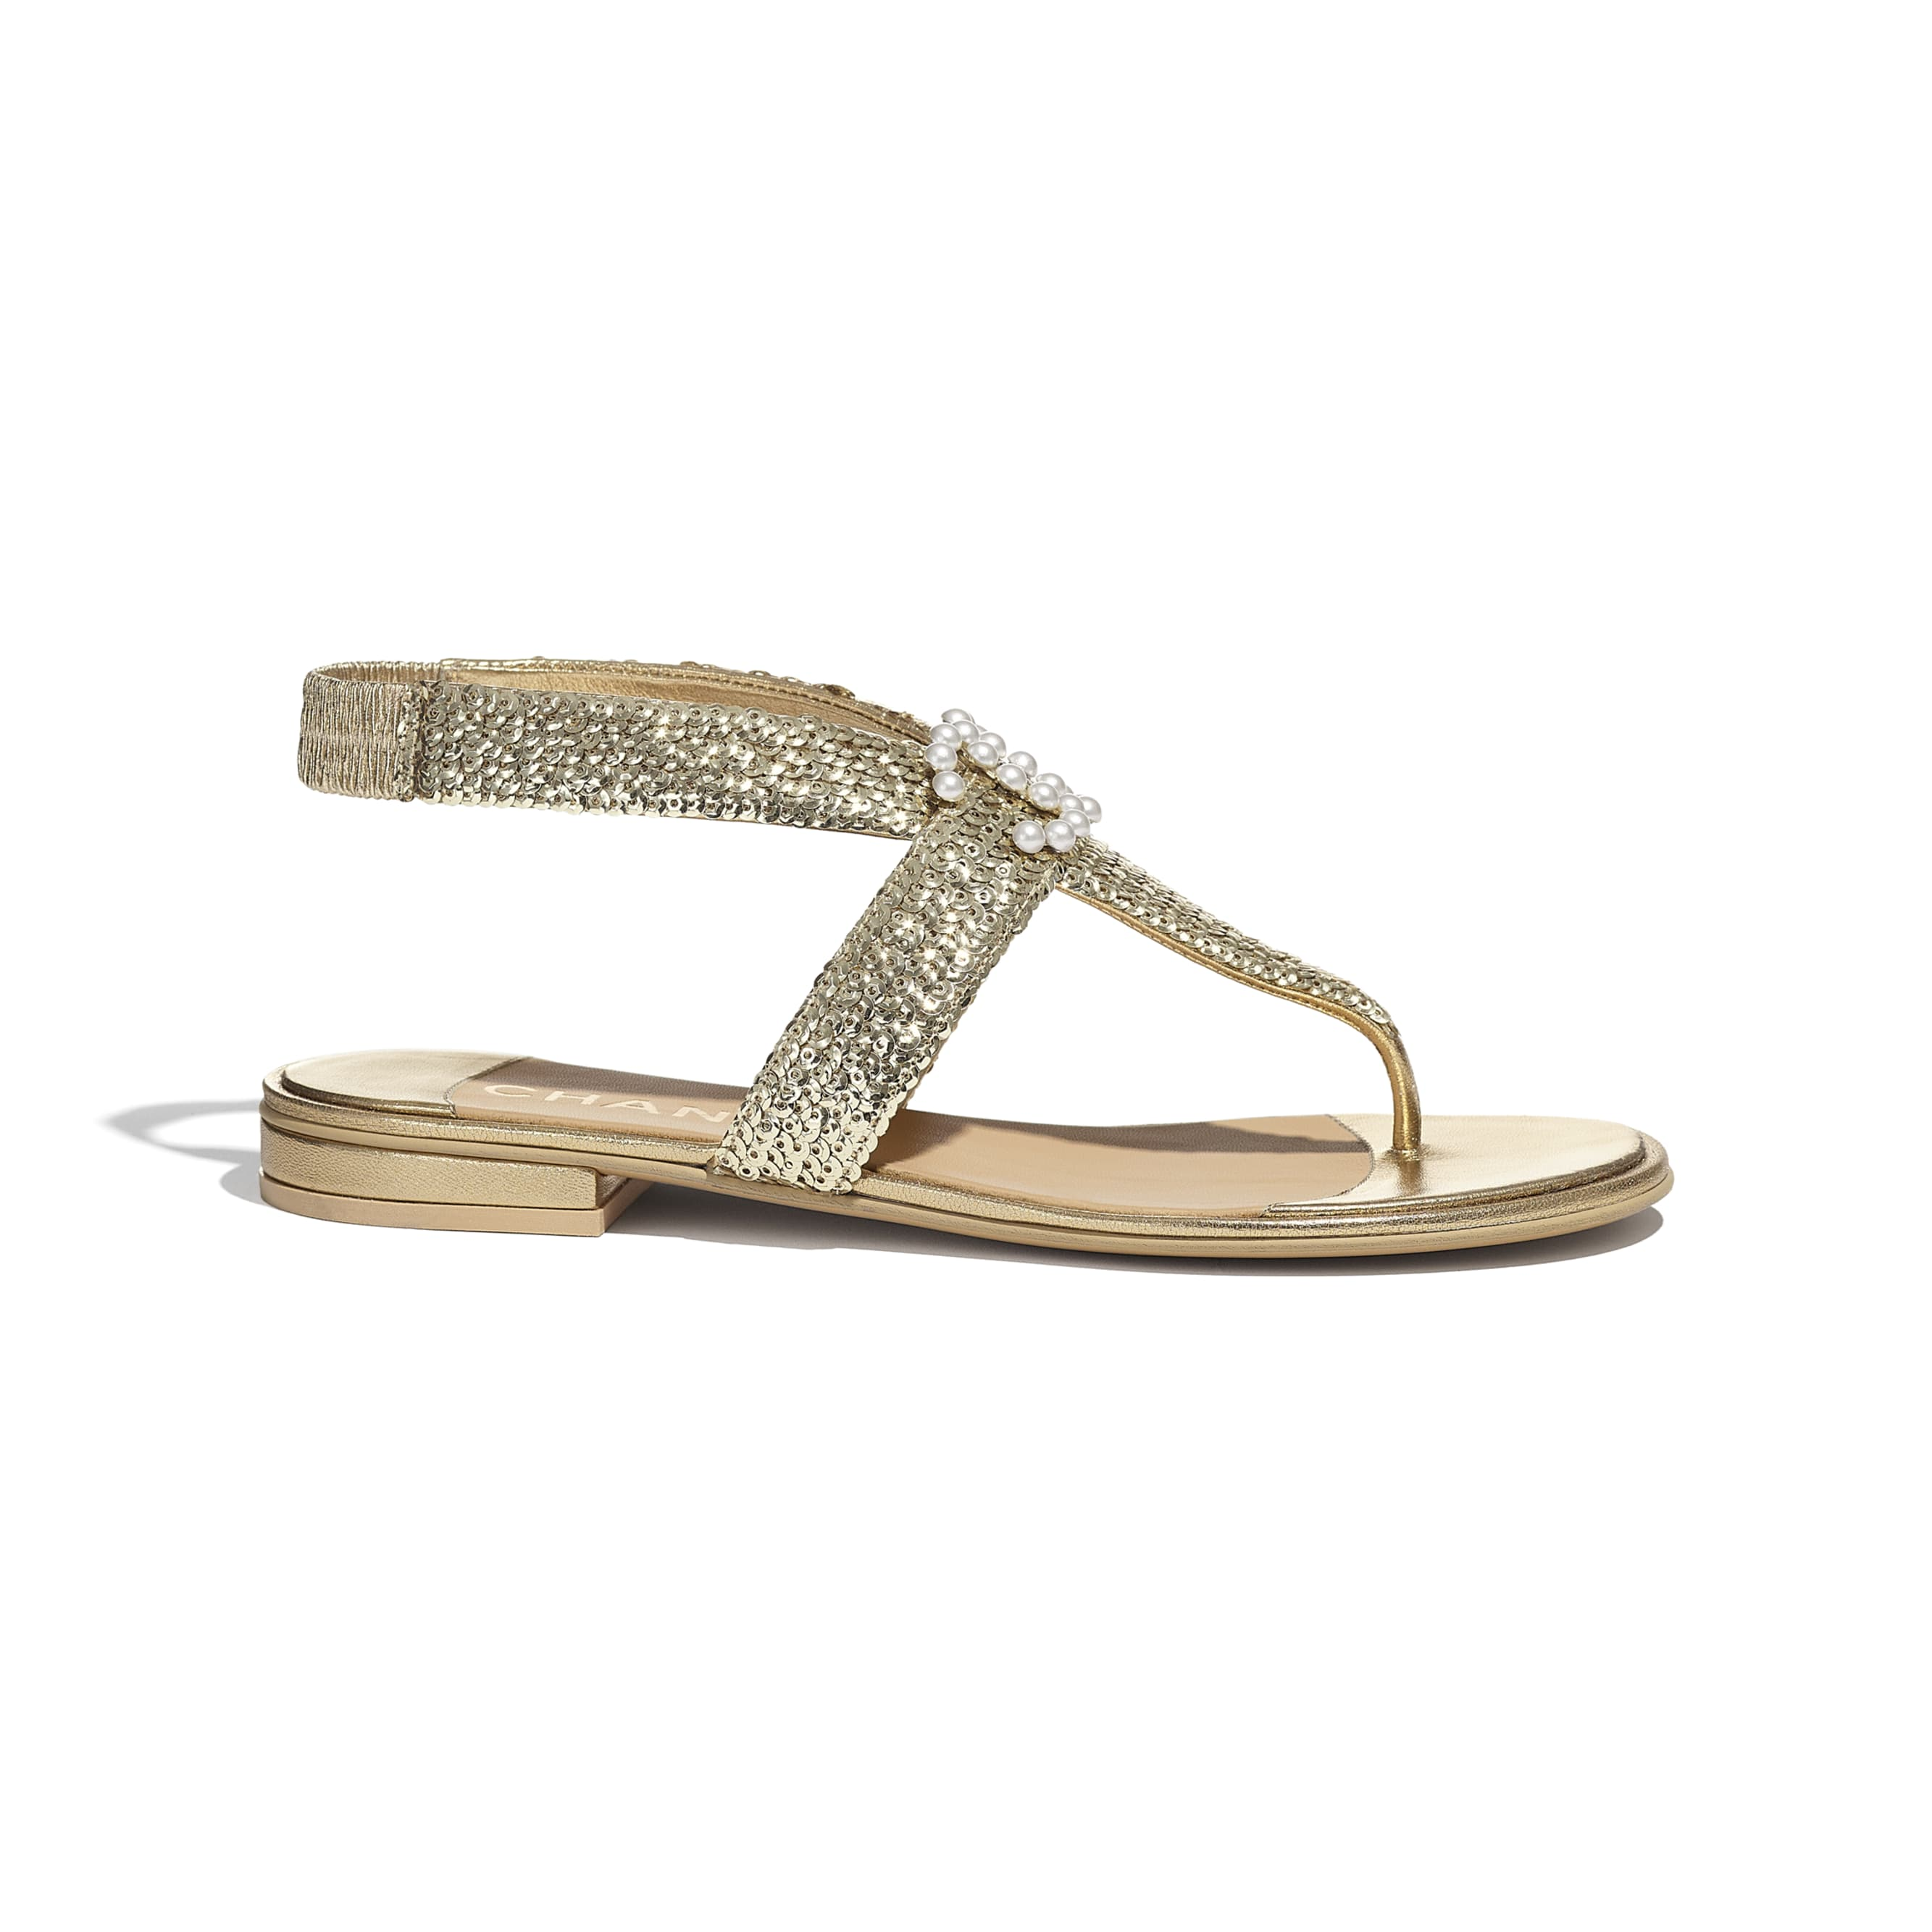 Sandals - Gold - Laminated Lambskin & Sequins - CHANEL - Default view - see standard sized version